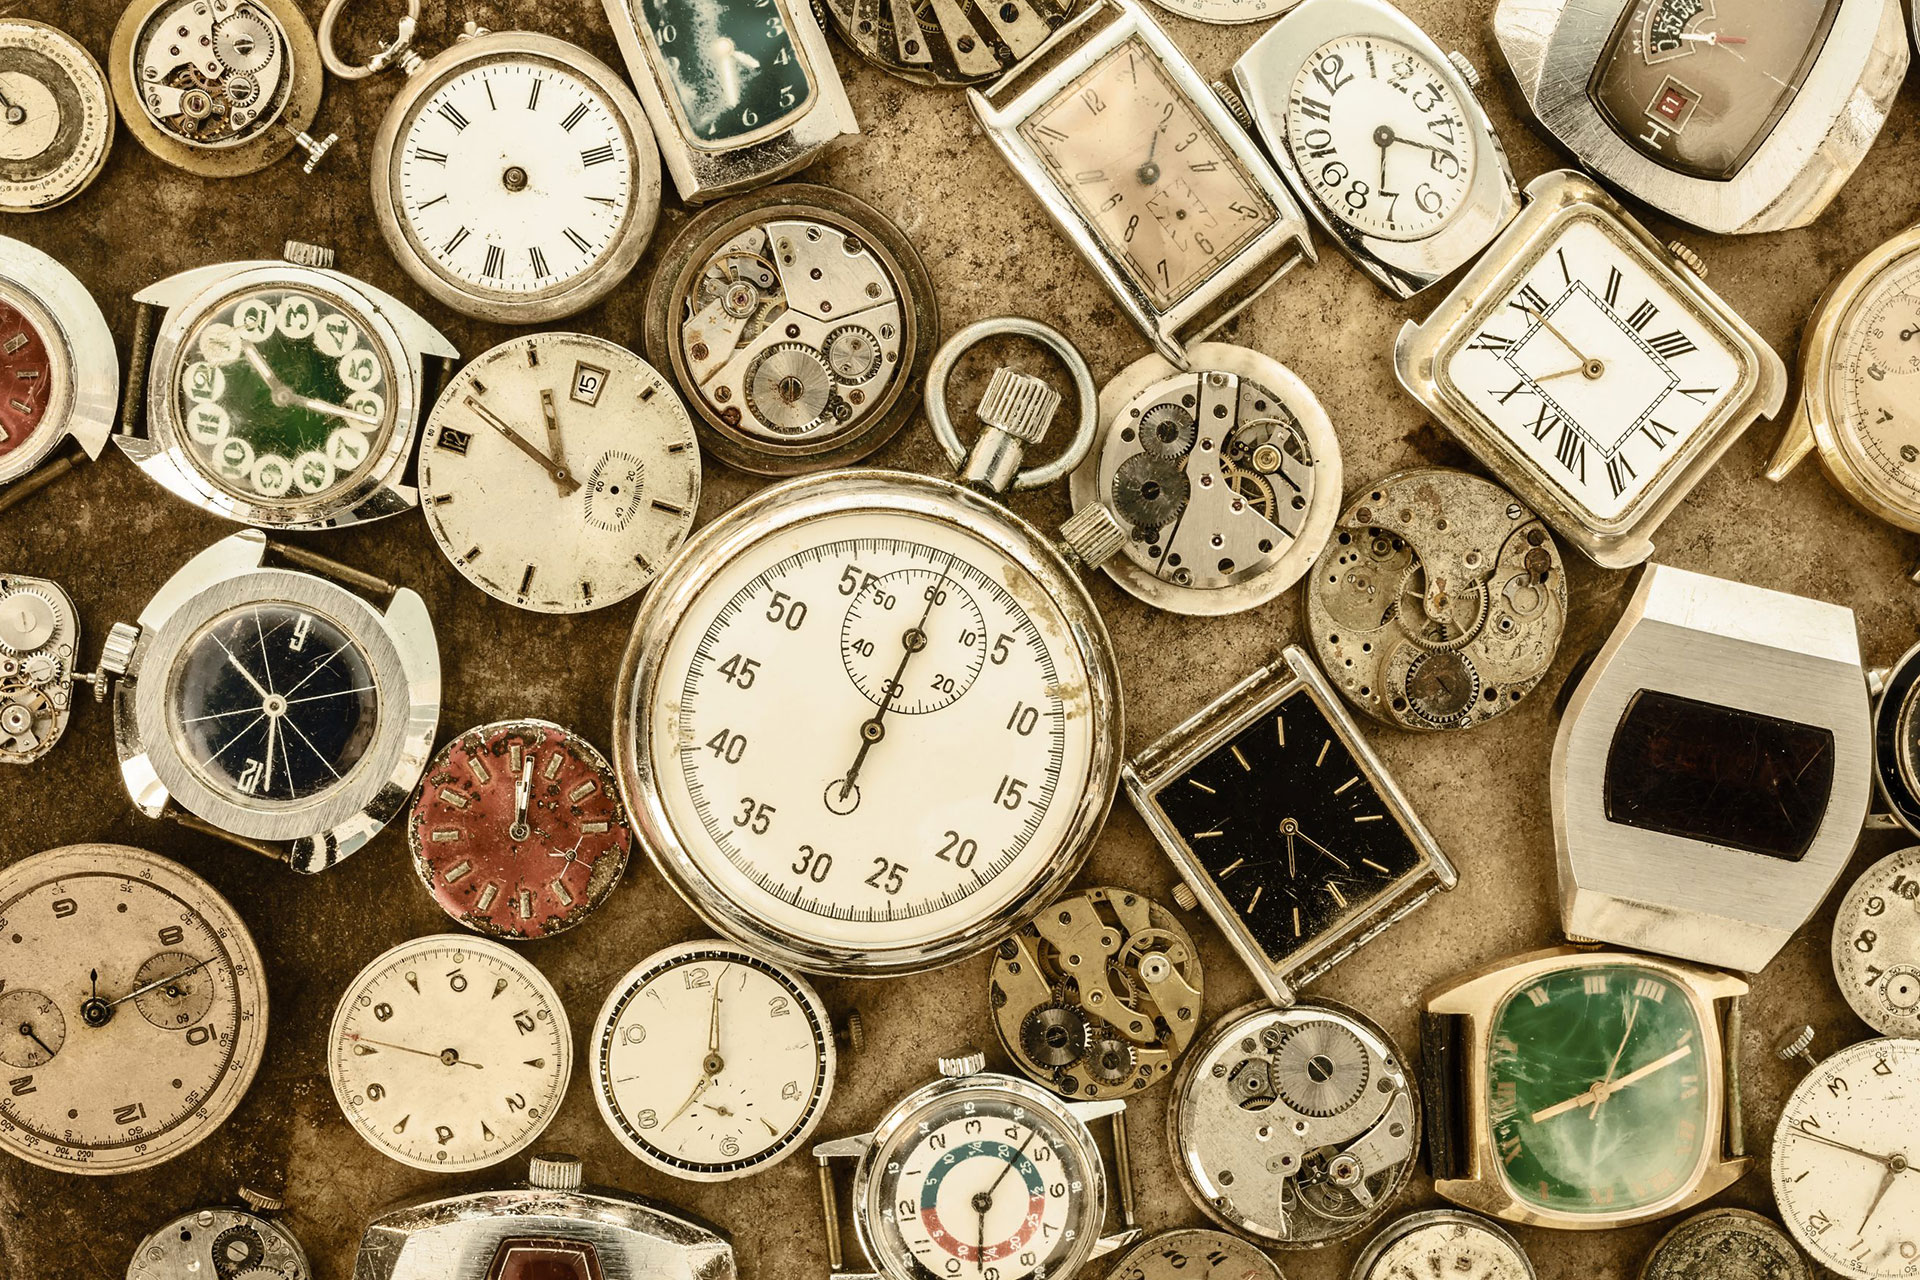 Timeless Clocks and Watches